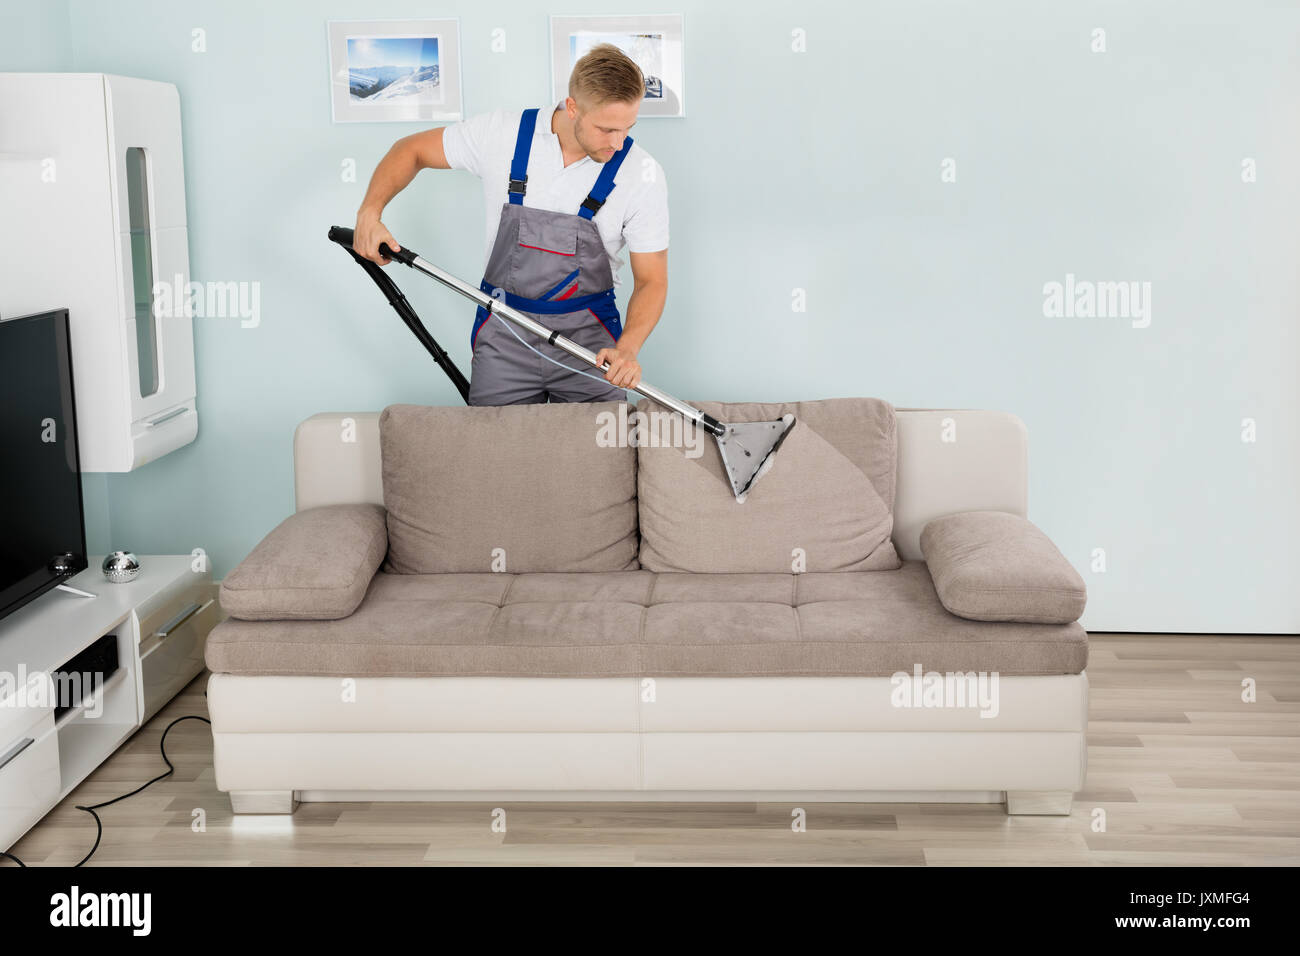 Young Male Worker Cleaning Sofa With Vacuum Cleaner - Stock Image